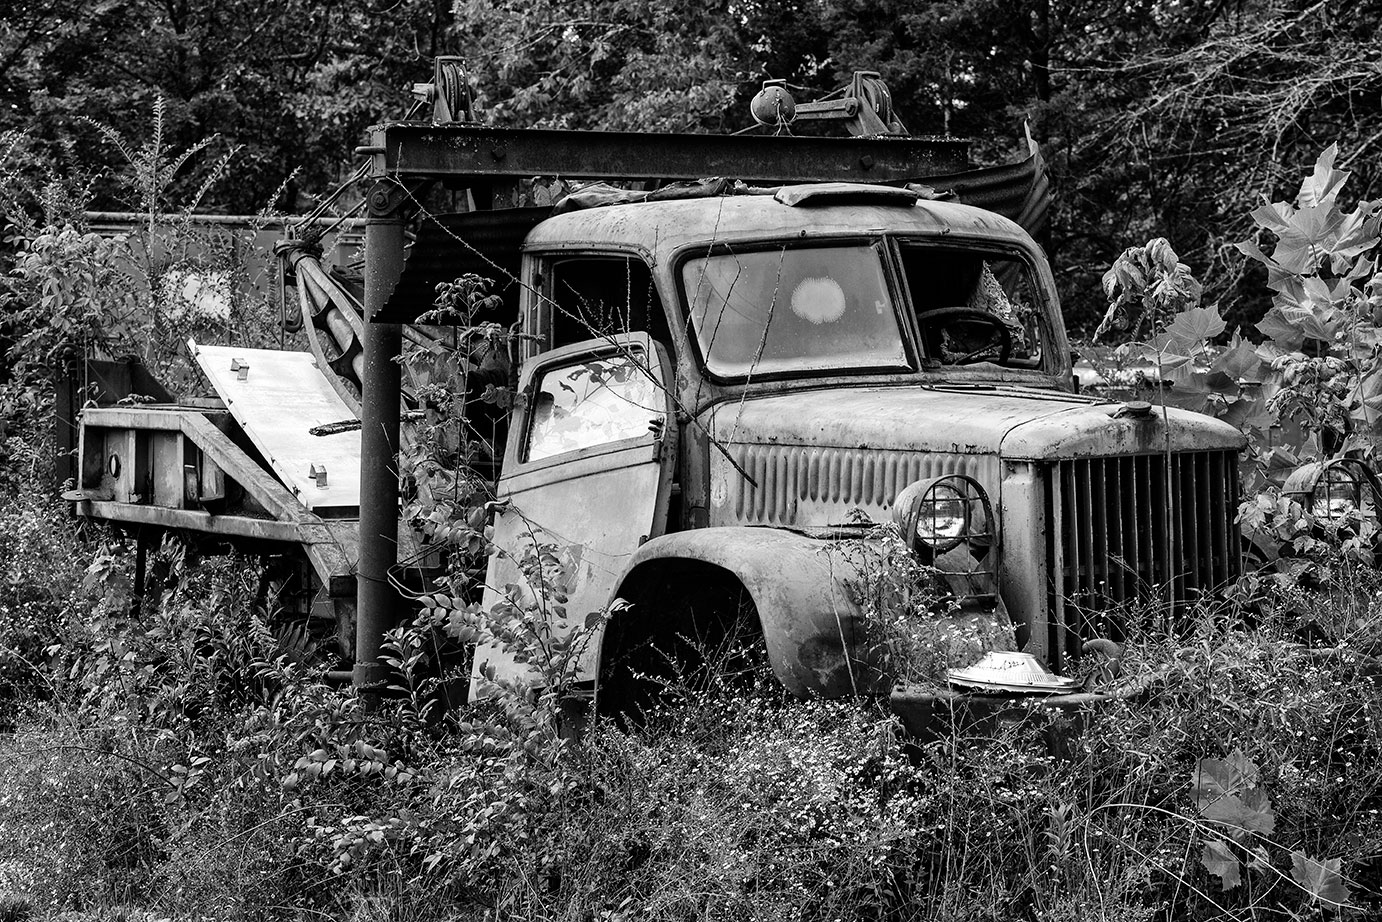 This old tow truck has seen much better days.